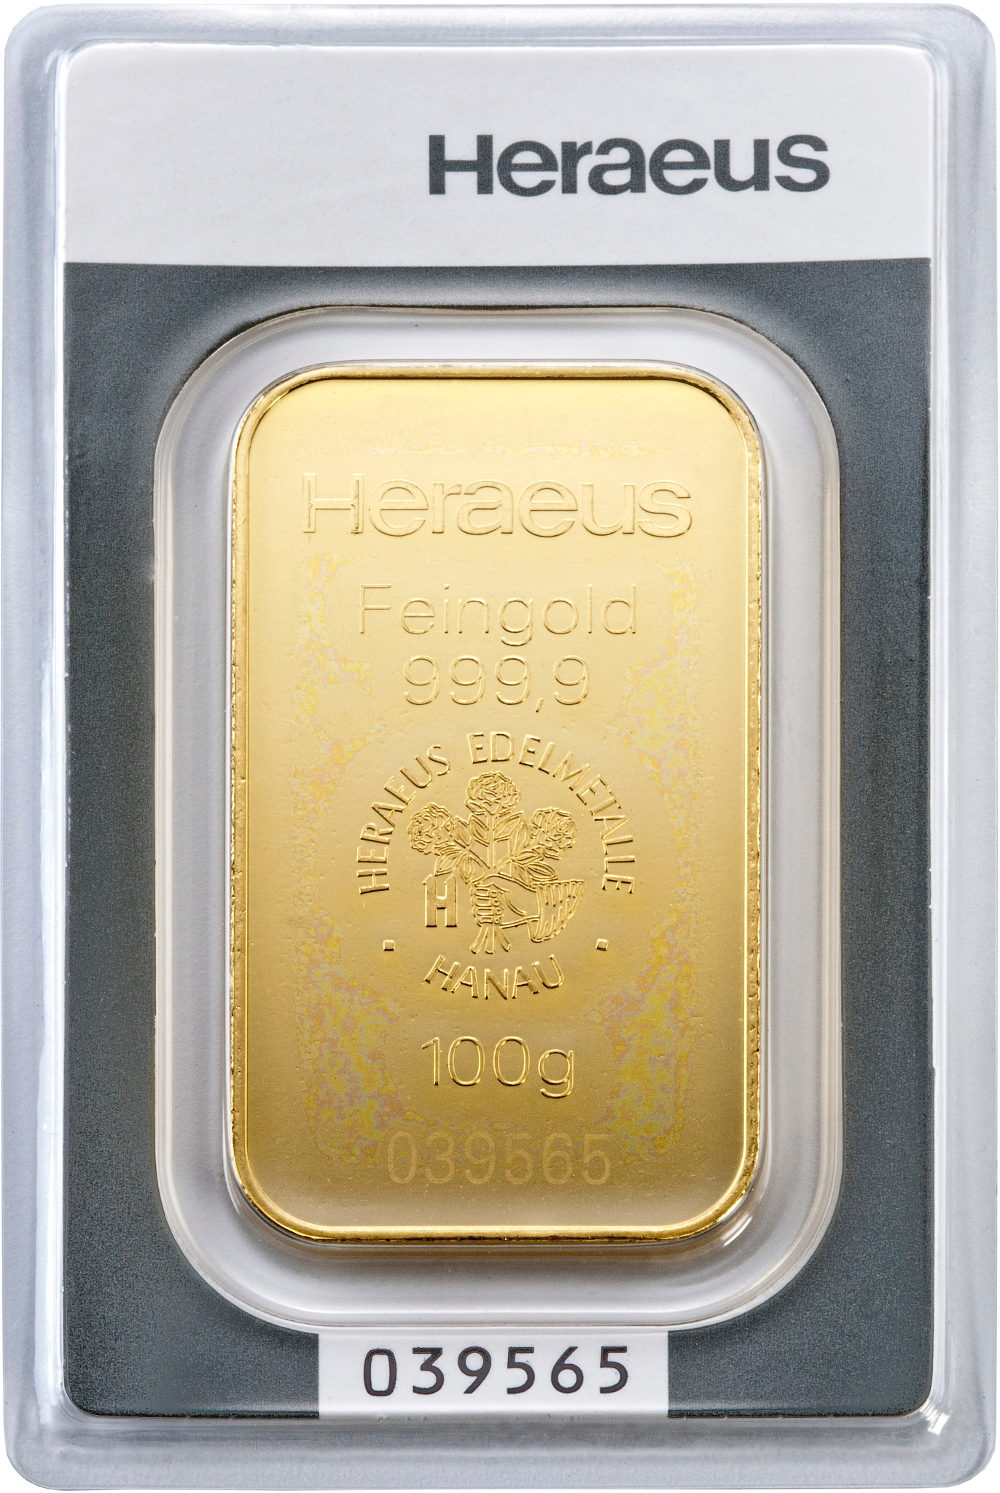 100g Heraeus Gold Bullion Bars Bullionbypost From 163 3 316